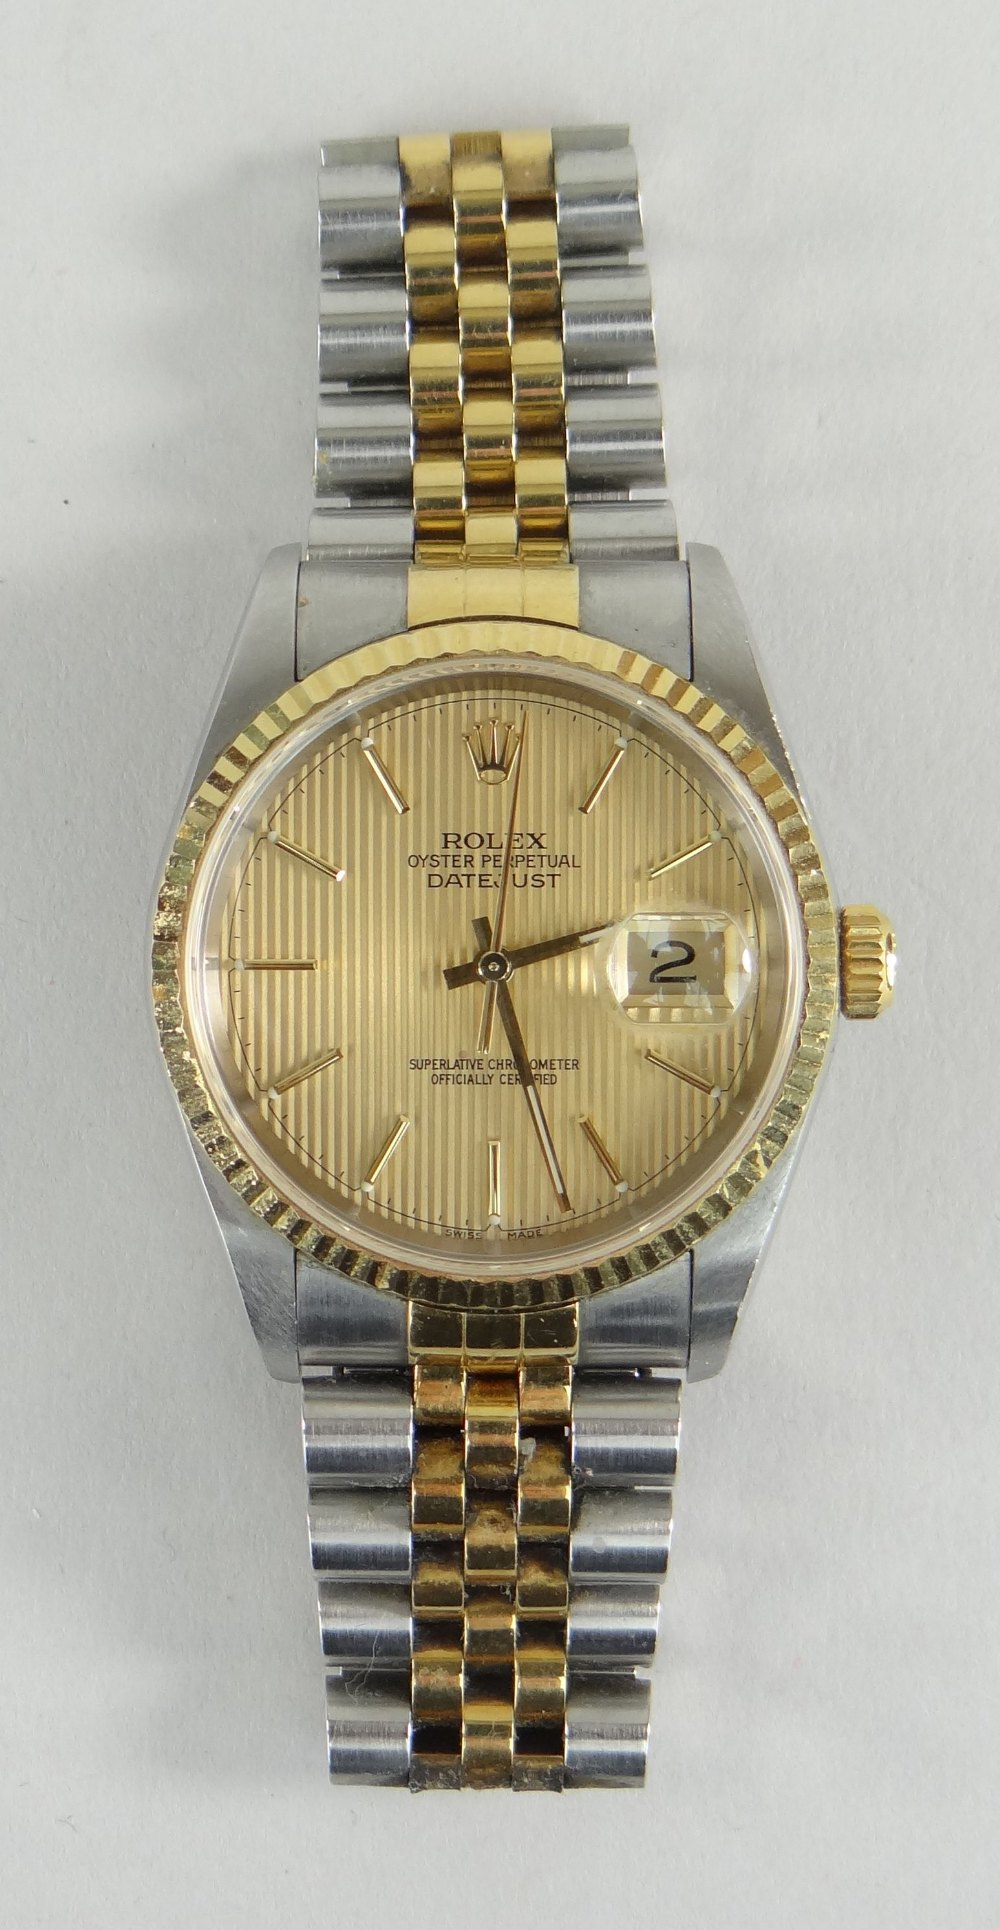 ROLEX OYSTER PERPETUAL DATEJUST SUPERLATIVE CHRONOMETER WRISTWATCH, having baton hands and numerals, - Image 2 of 5